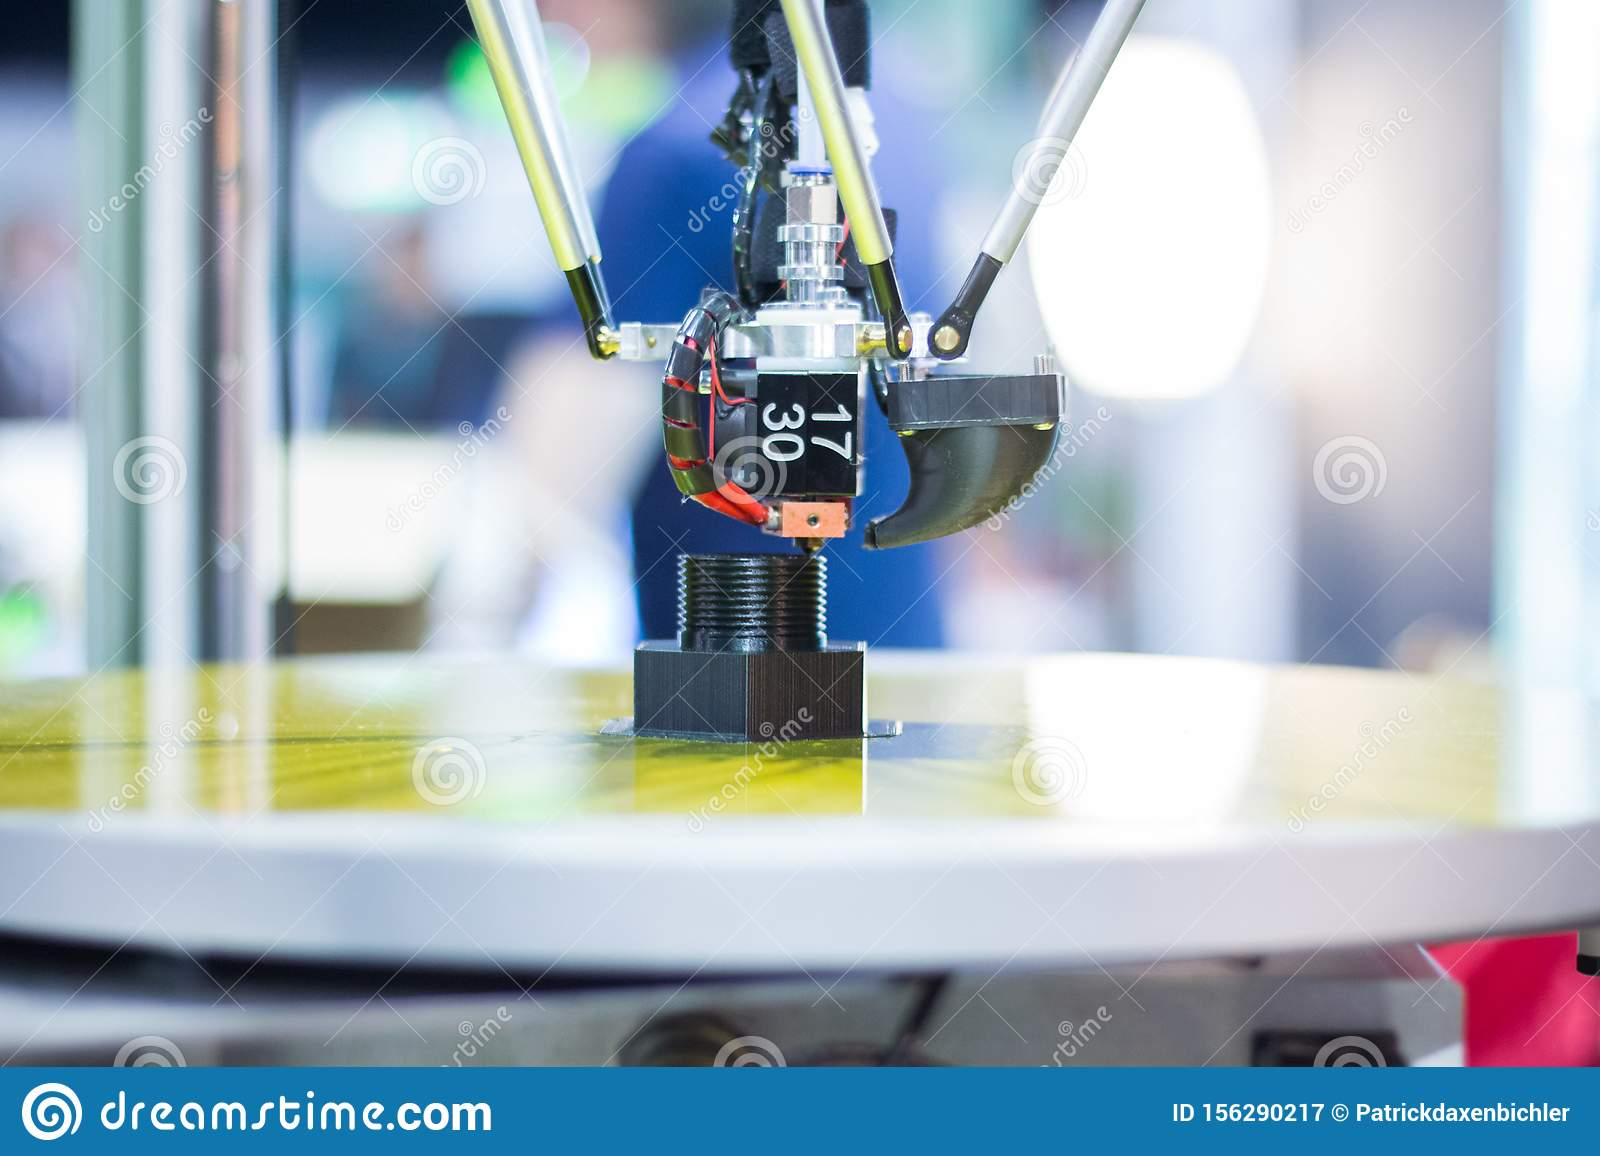 Automatic three-dimensional 3d printer performs product creation. 3d printing and automatic robotic technology, close-up